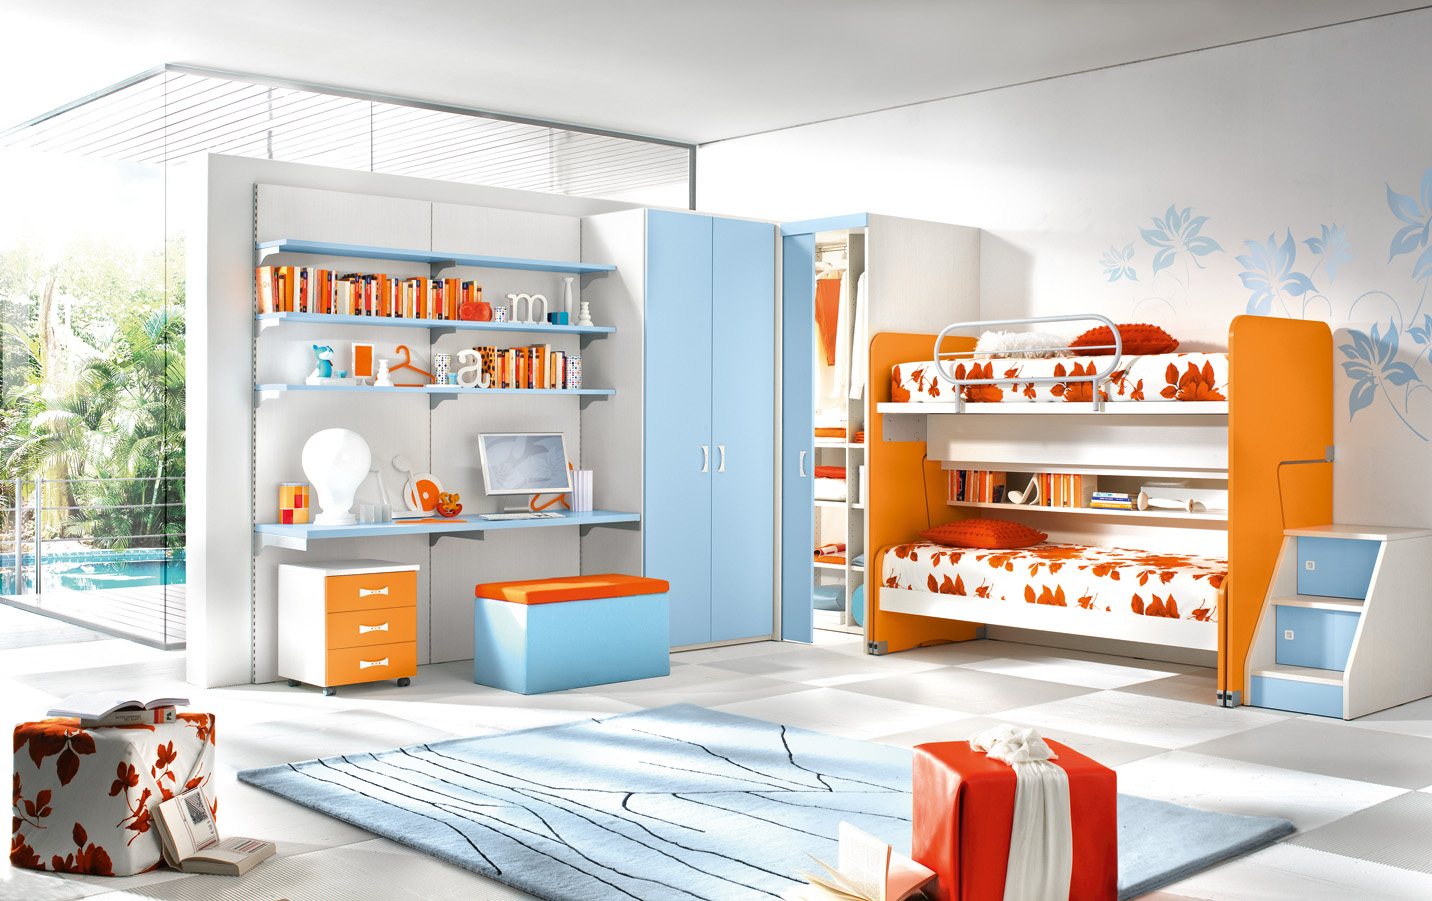 20 contemporary kids room interior design ideas Bunk room designs